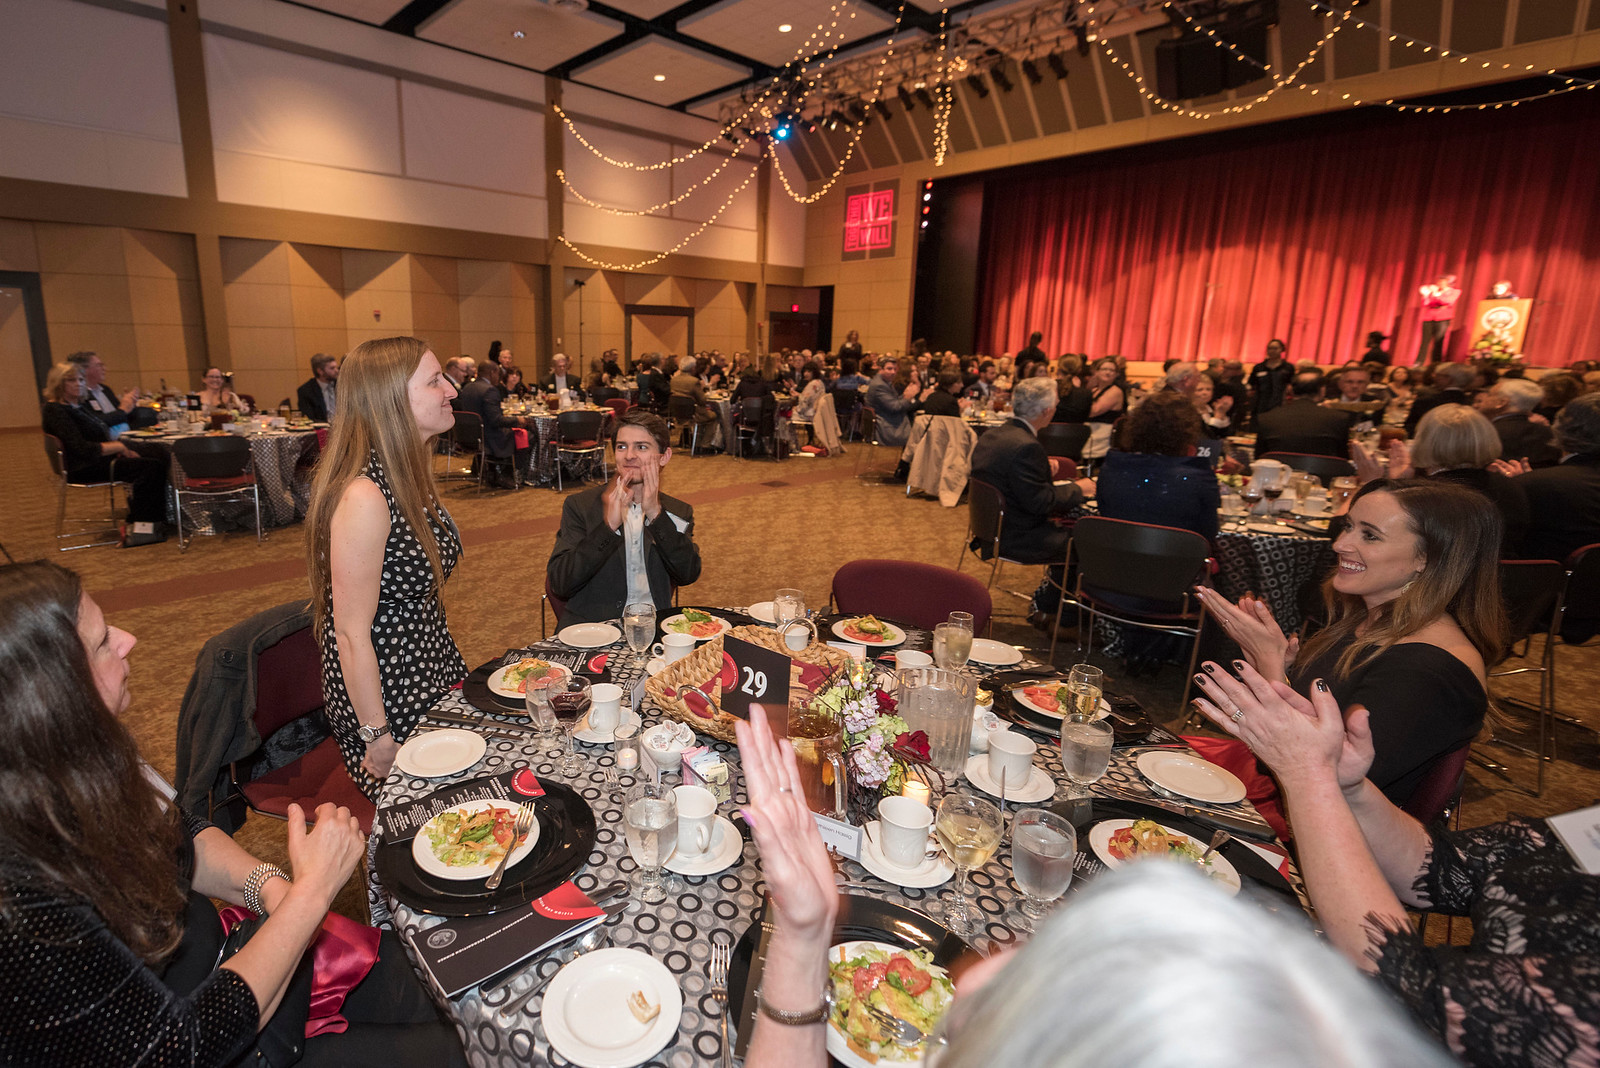 Keely Davis (left) is recognized as guests and honorees enjoy the Distinguished Alumni Dinner on Friday, March 24, 2017 in Chico, Calif. (Jason Halley/University Photographer)